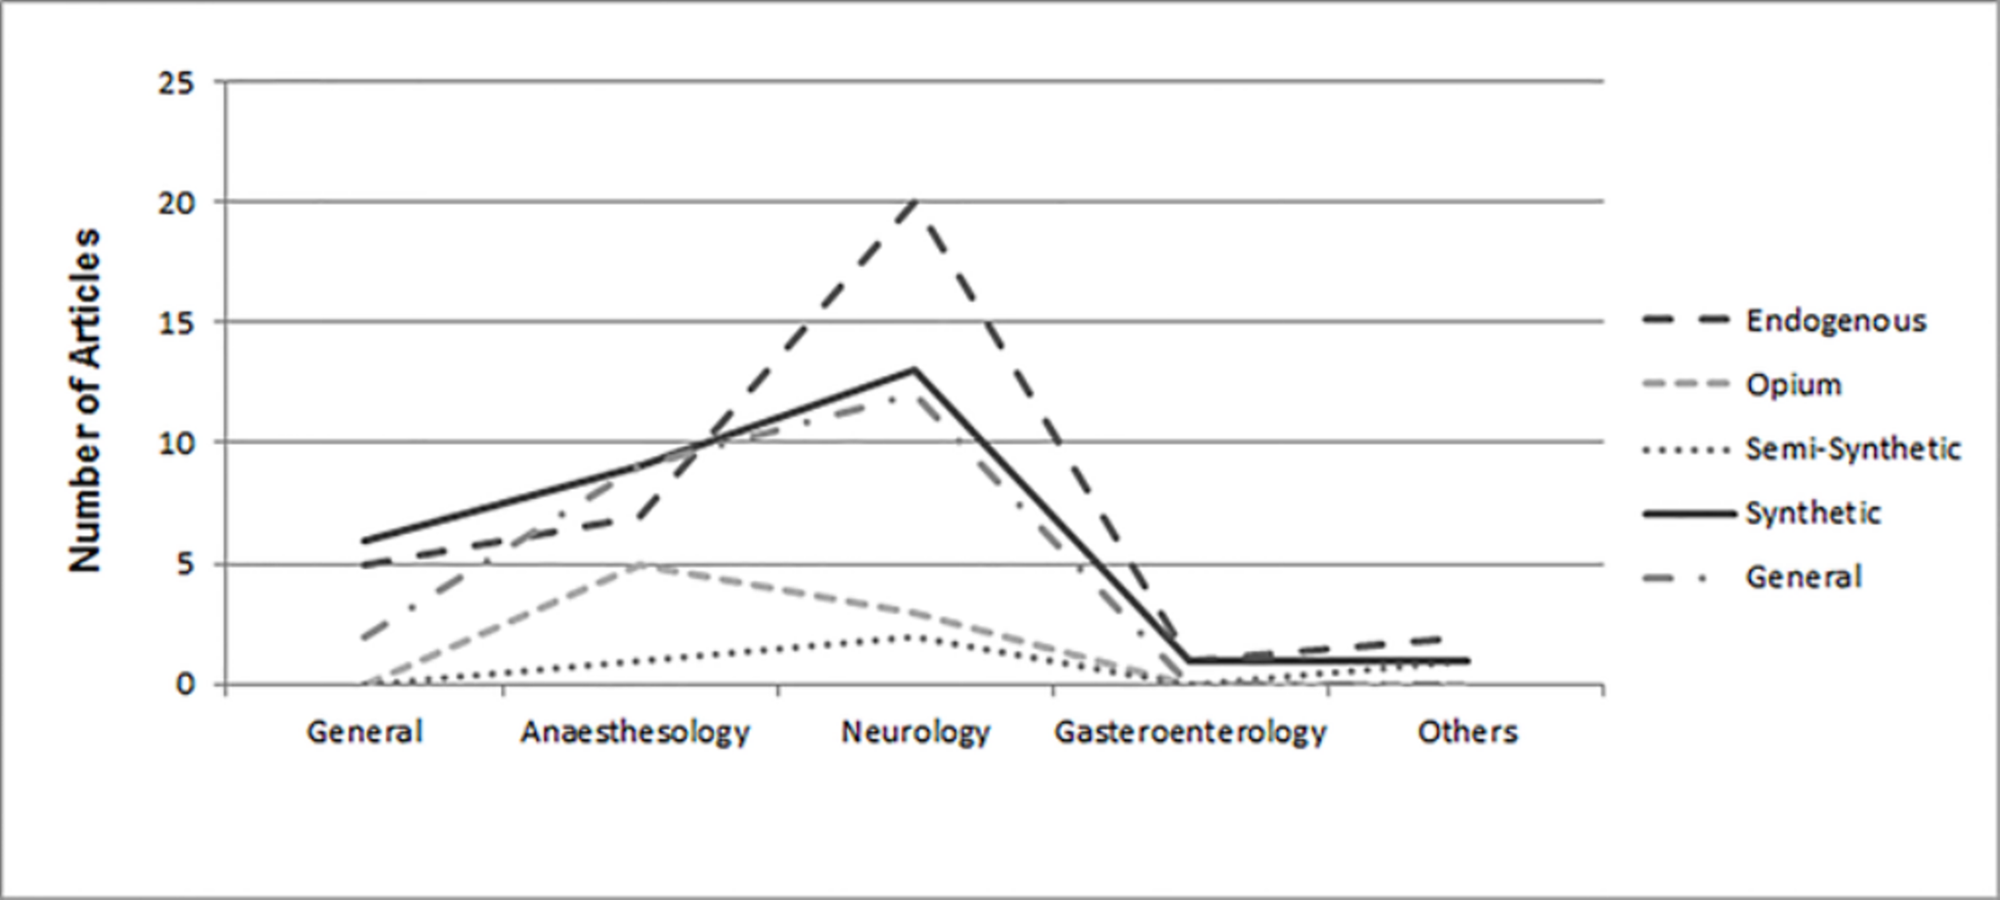 Number-of-articles-on-classification-of-opioids-published-in-each-subject-area.